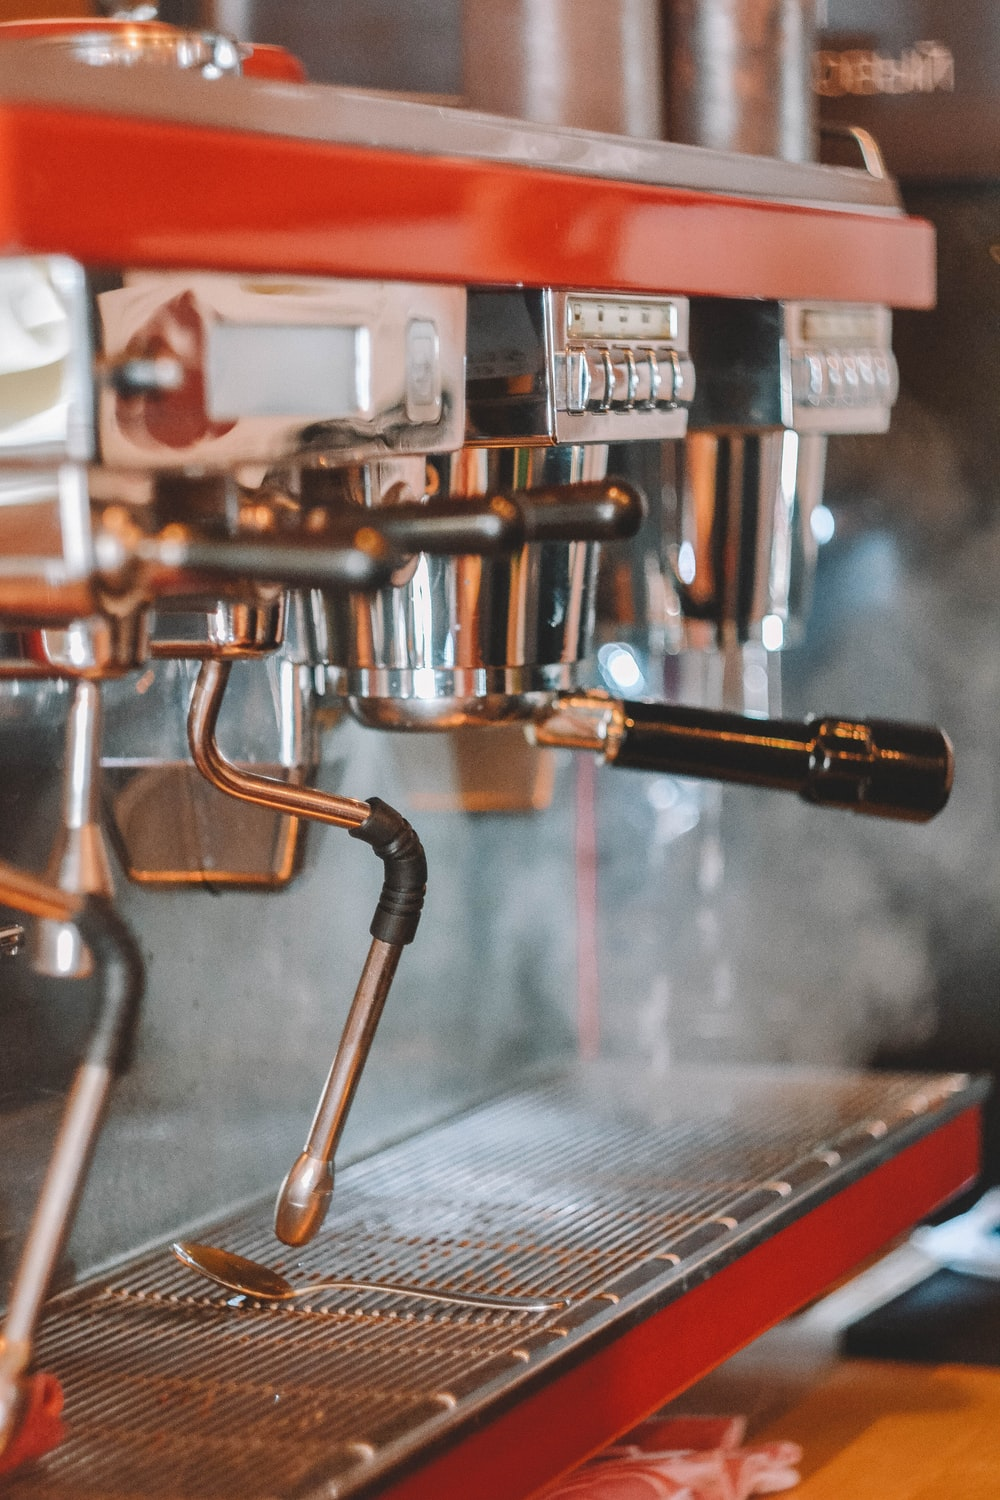 stainless steel espresso machine with coffee cup